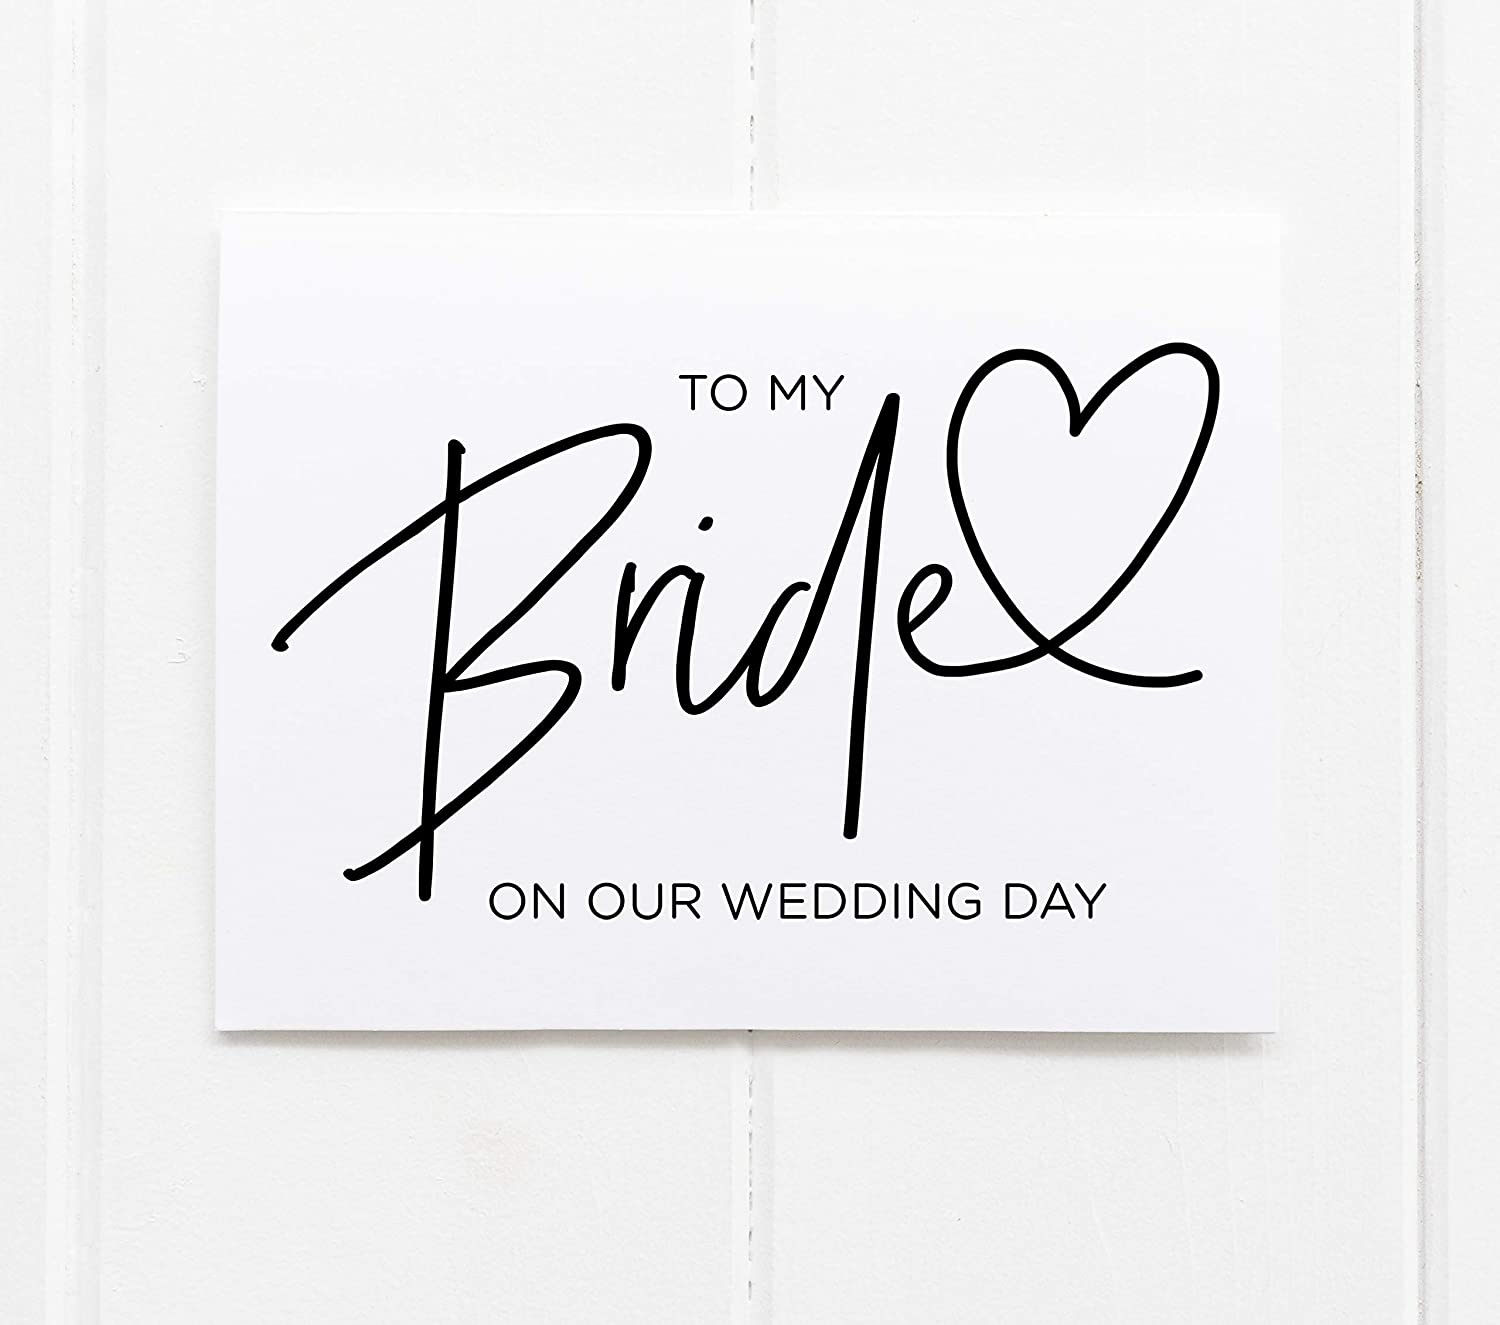 To New item My Bride on our Bombing free shipping Wedding Day Card Groom from Black and White M